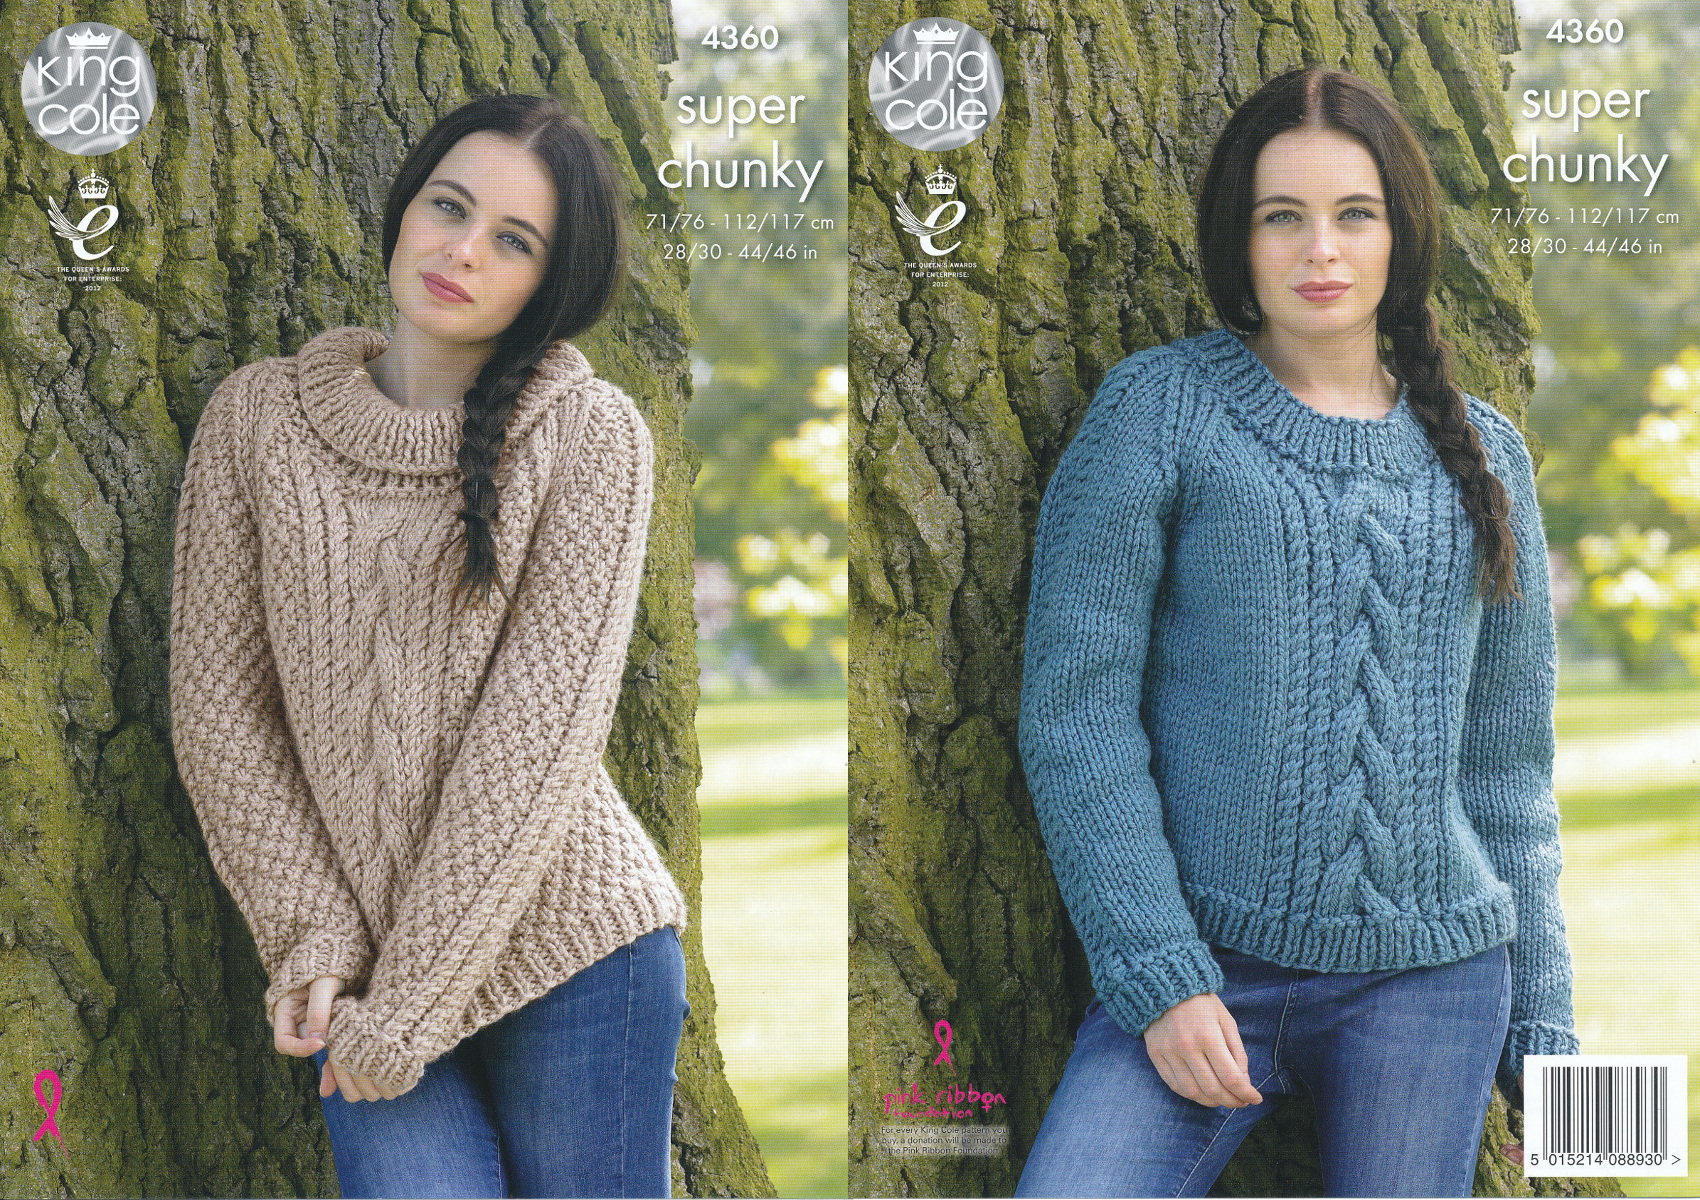 Super Chunky Jumper Knitting Pattern : Ladies Super Chunky Knitting Pattern King Cole Cable Knit Sweaters Jumpers 43...